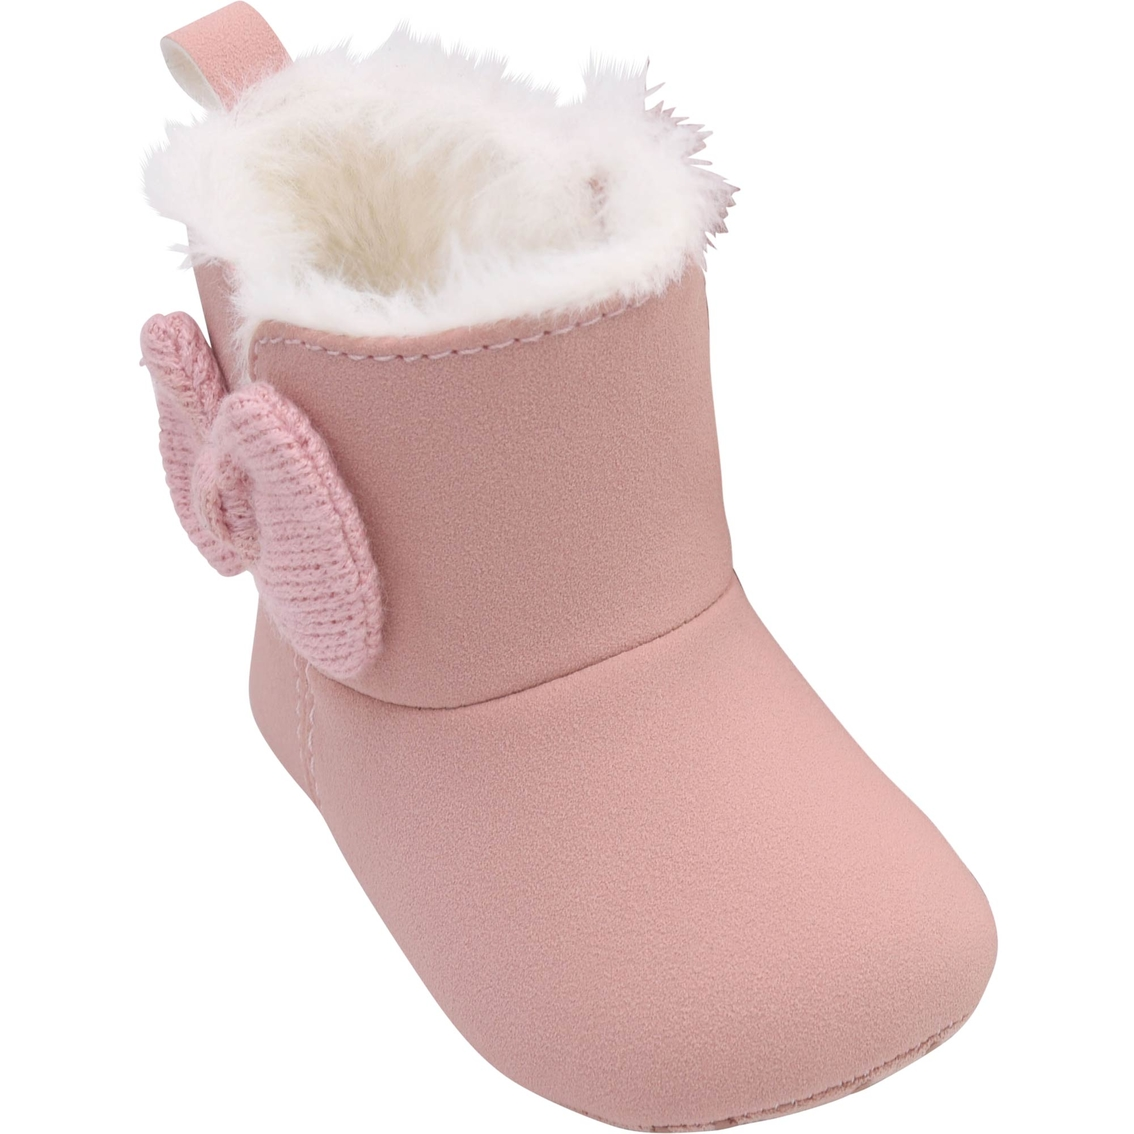 Infant Girls Bow Boots   Boots   Shoes